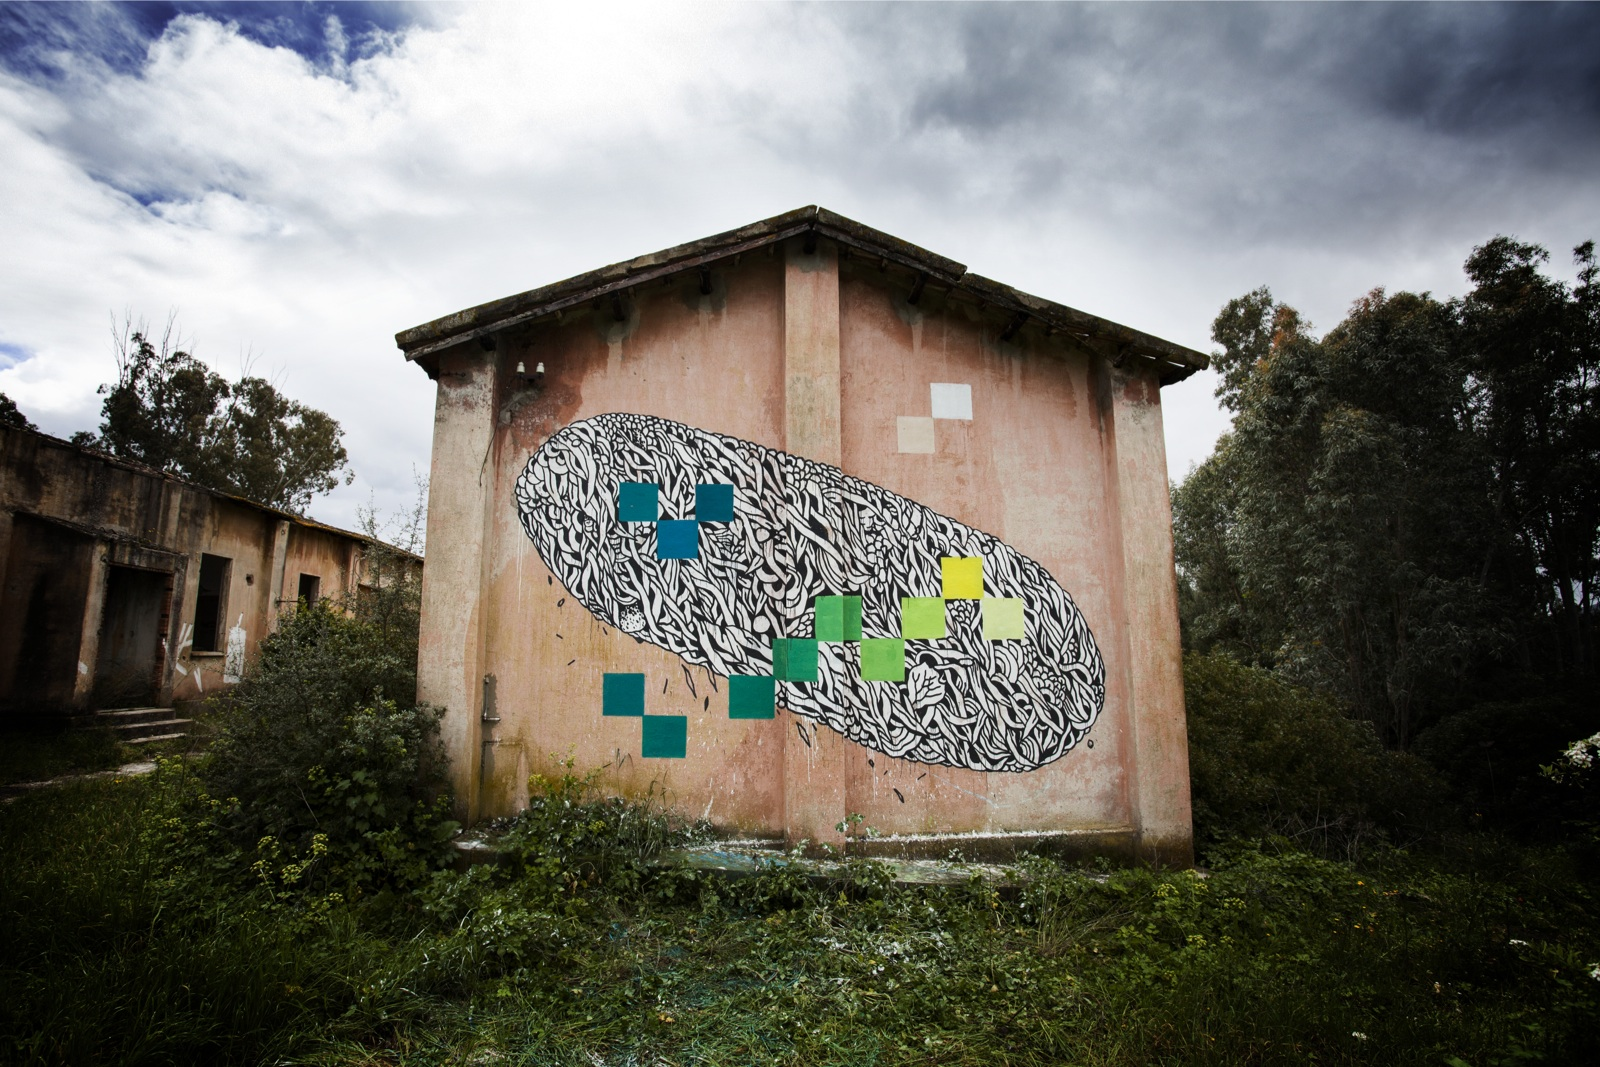 tellas-alberonero-new-mural-in-sardinia-05